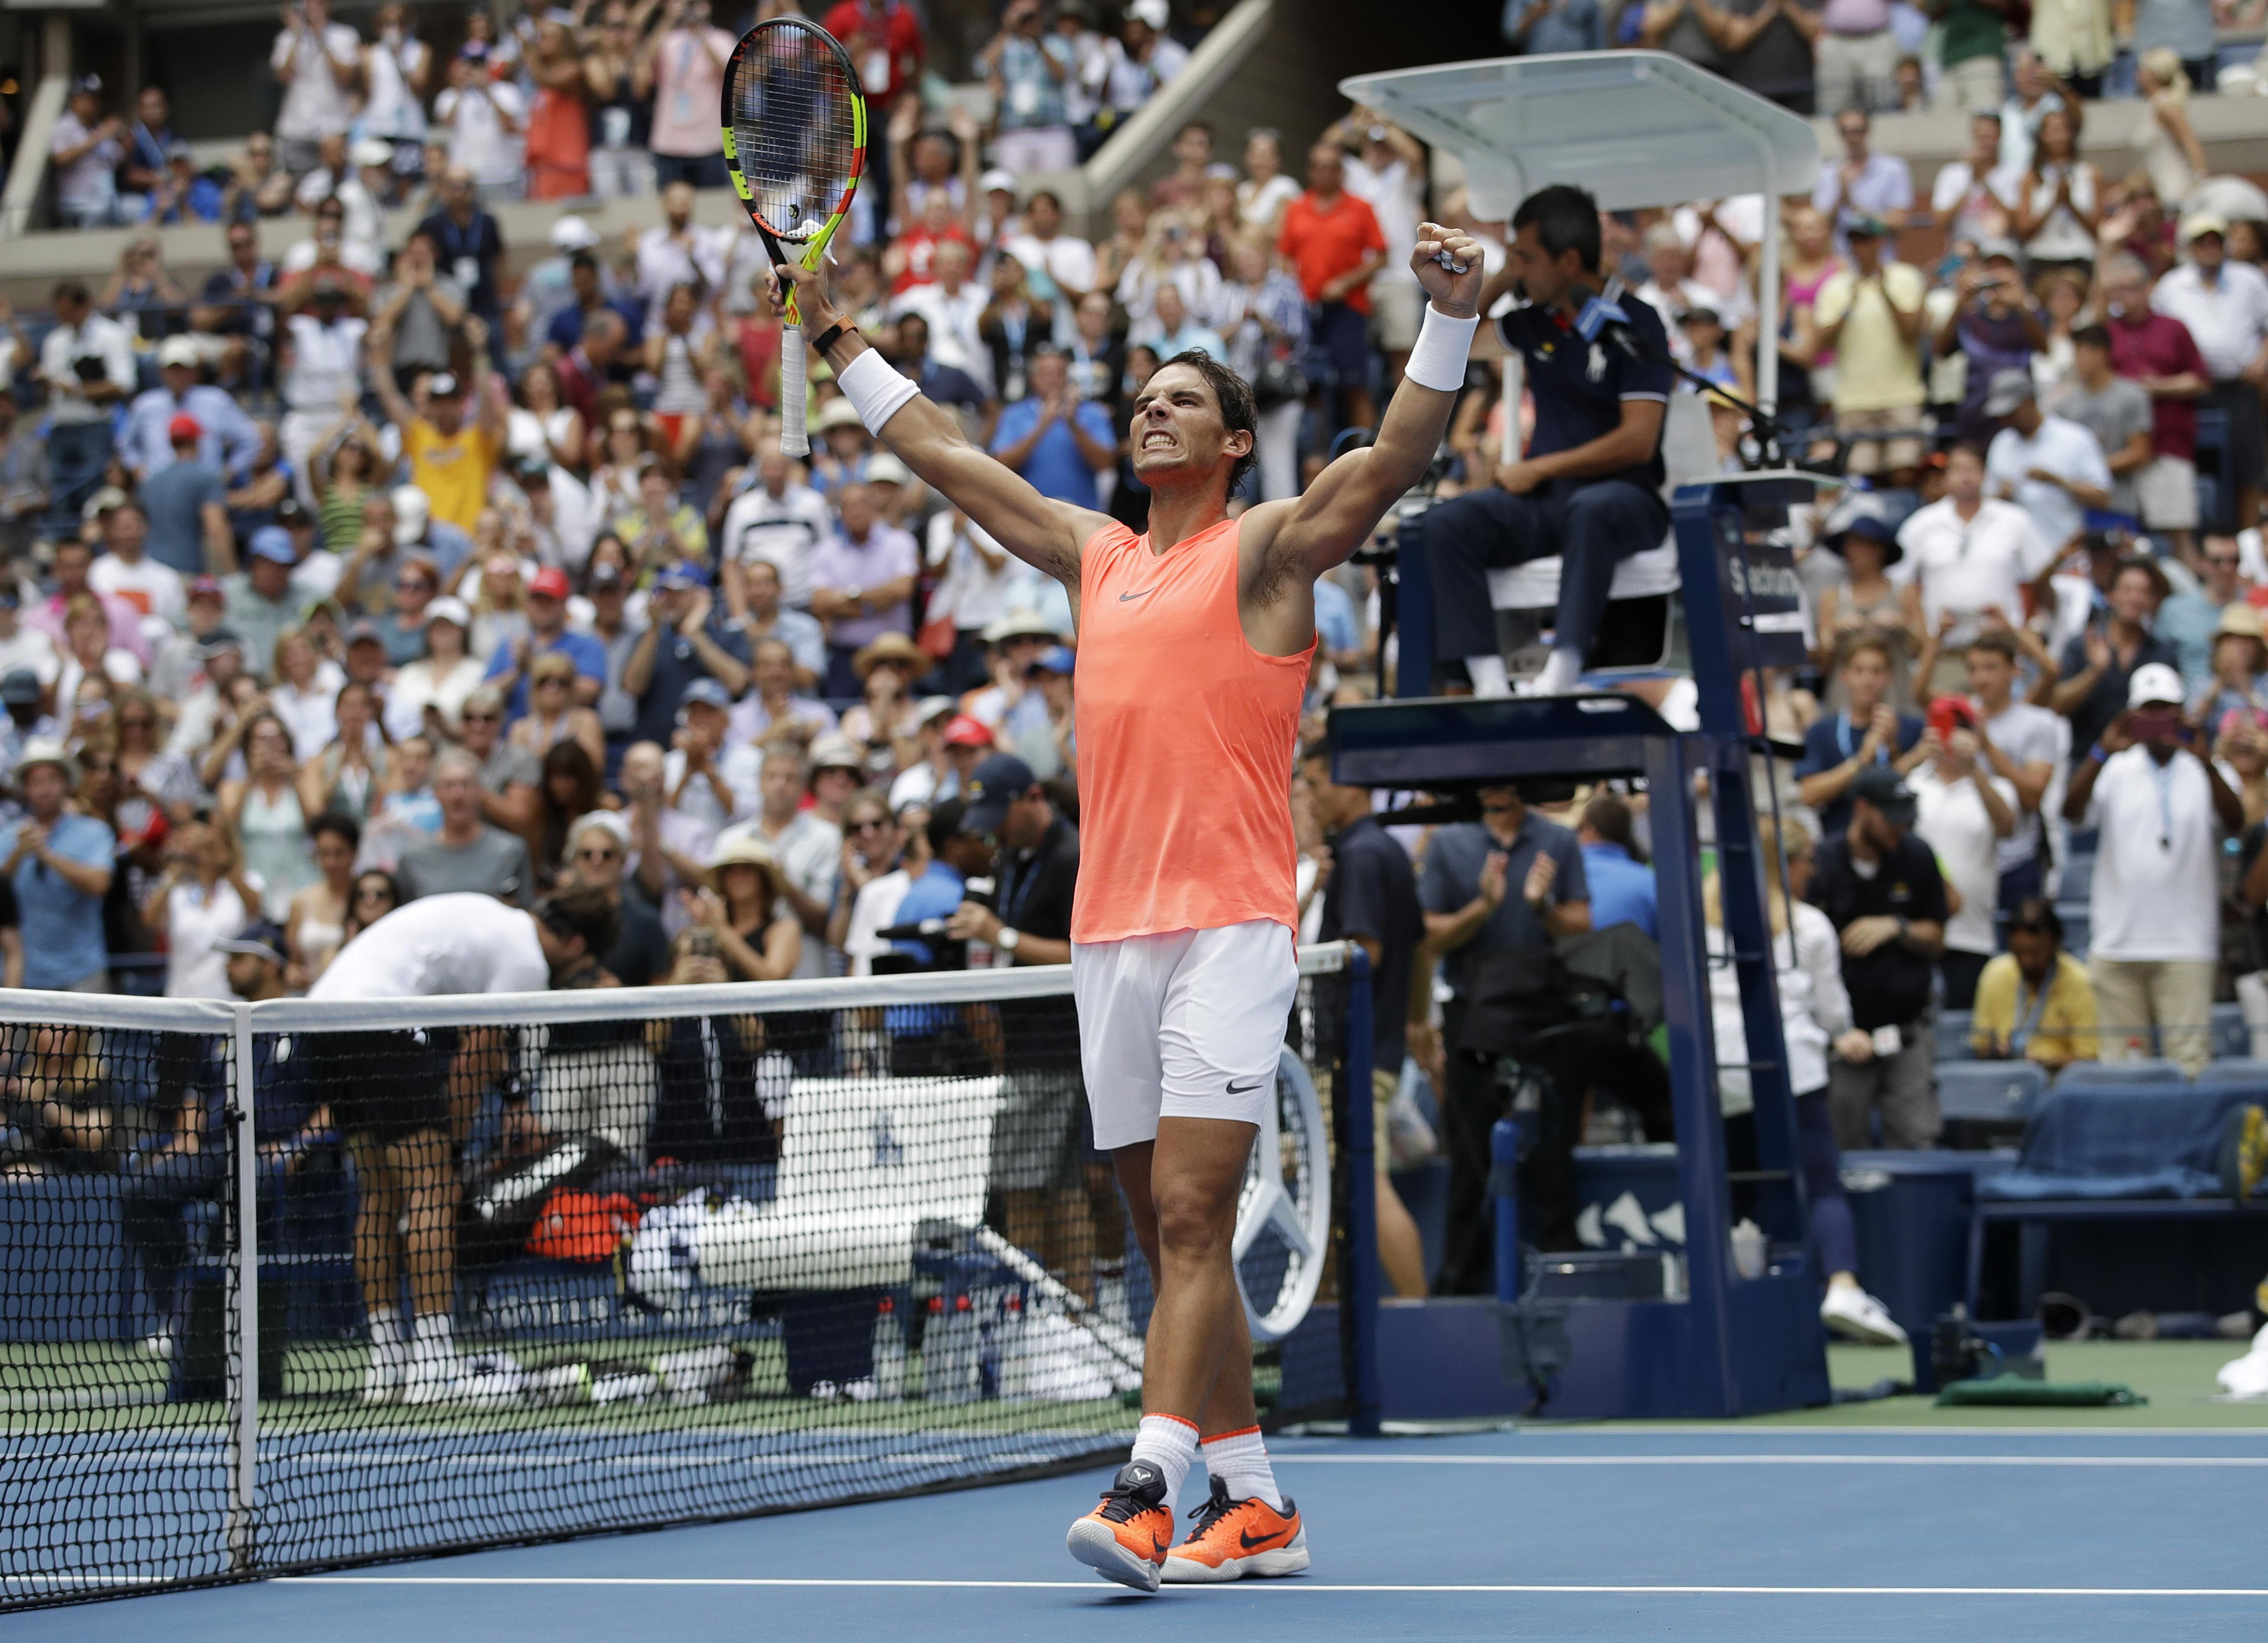 The win sets up a quarter-final clash with Dominic Thiem in a repeat of the French Open final earlier on this year